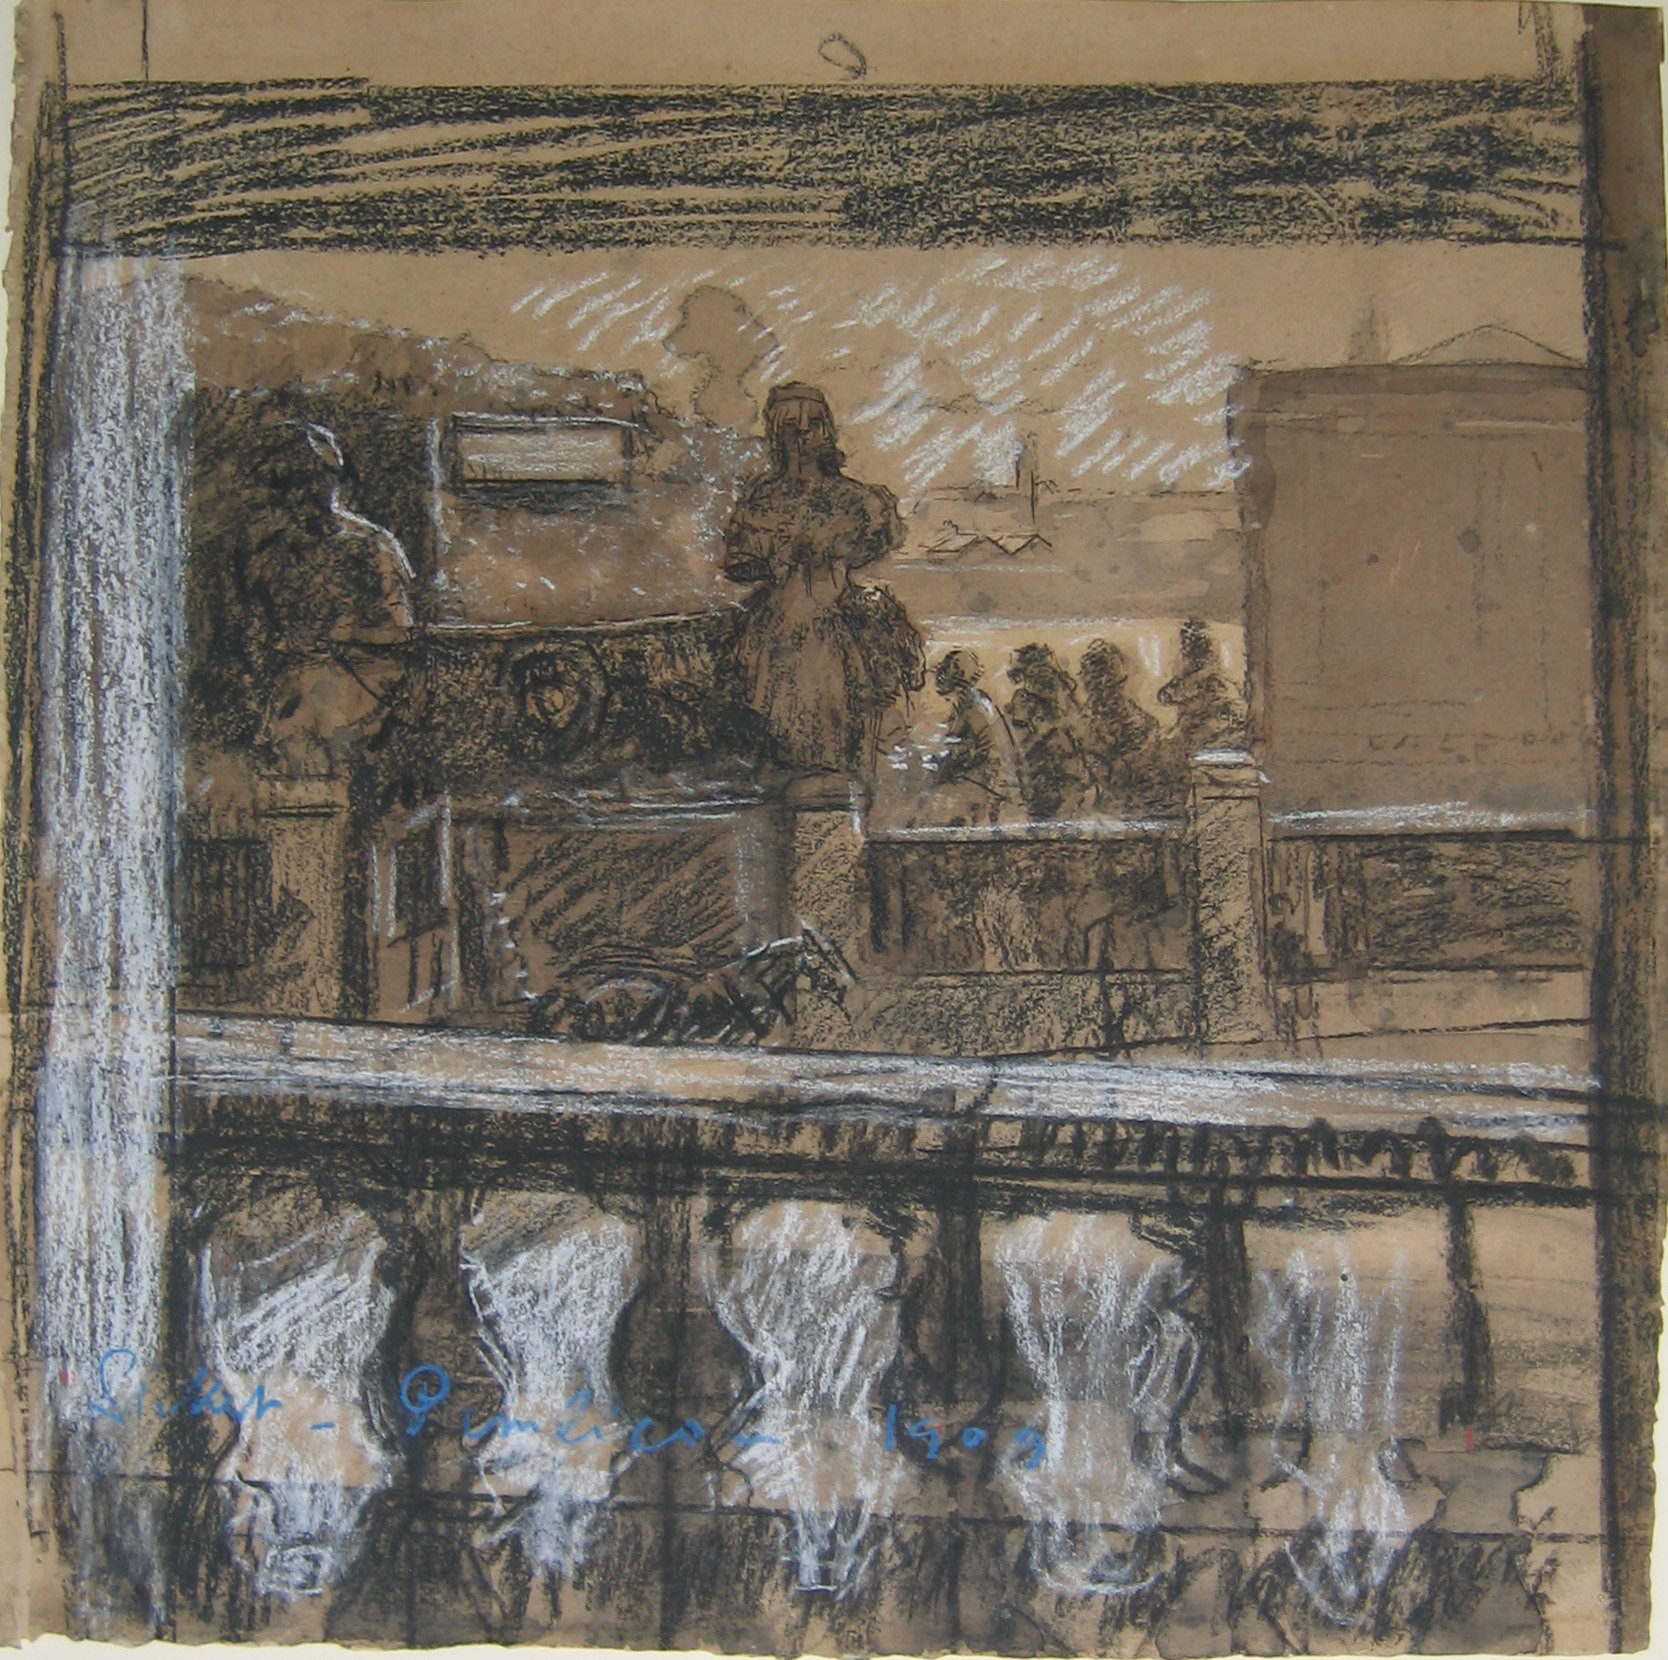 Walter Richard Sickert. Pimlico. 1909. Charcoal, watercolor, and chalk on paper, 21 1⁄2 × 19 1/2ʺ (54.6 × 49.6 cm). The Joan and Lester Avnet Collection. © 2016 Estate of Walter Richard Sickert / Artists Rights Society (ARS), New York / DACS, London